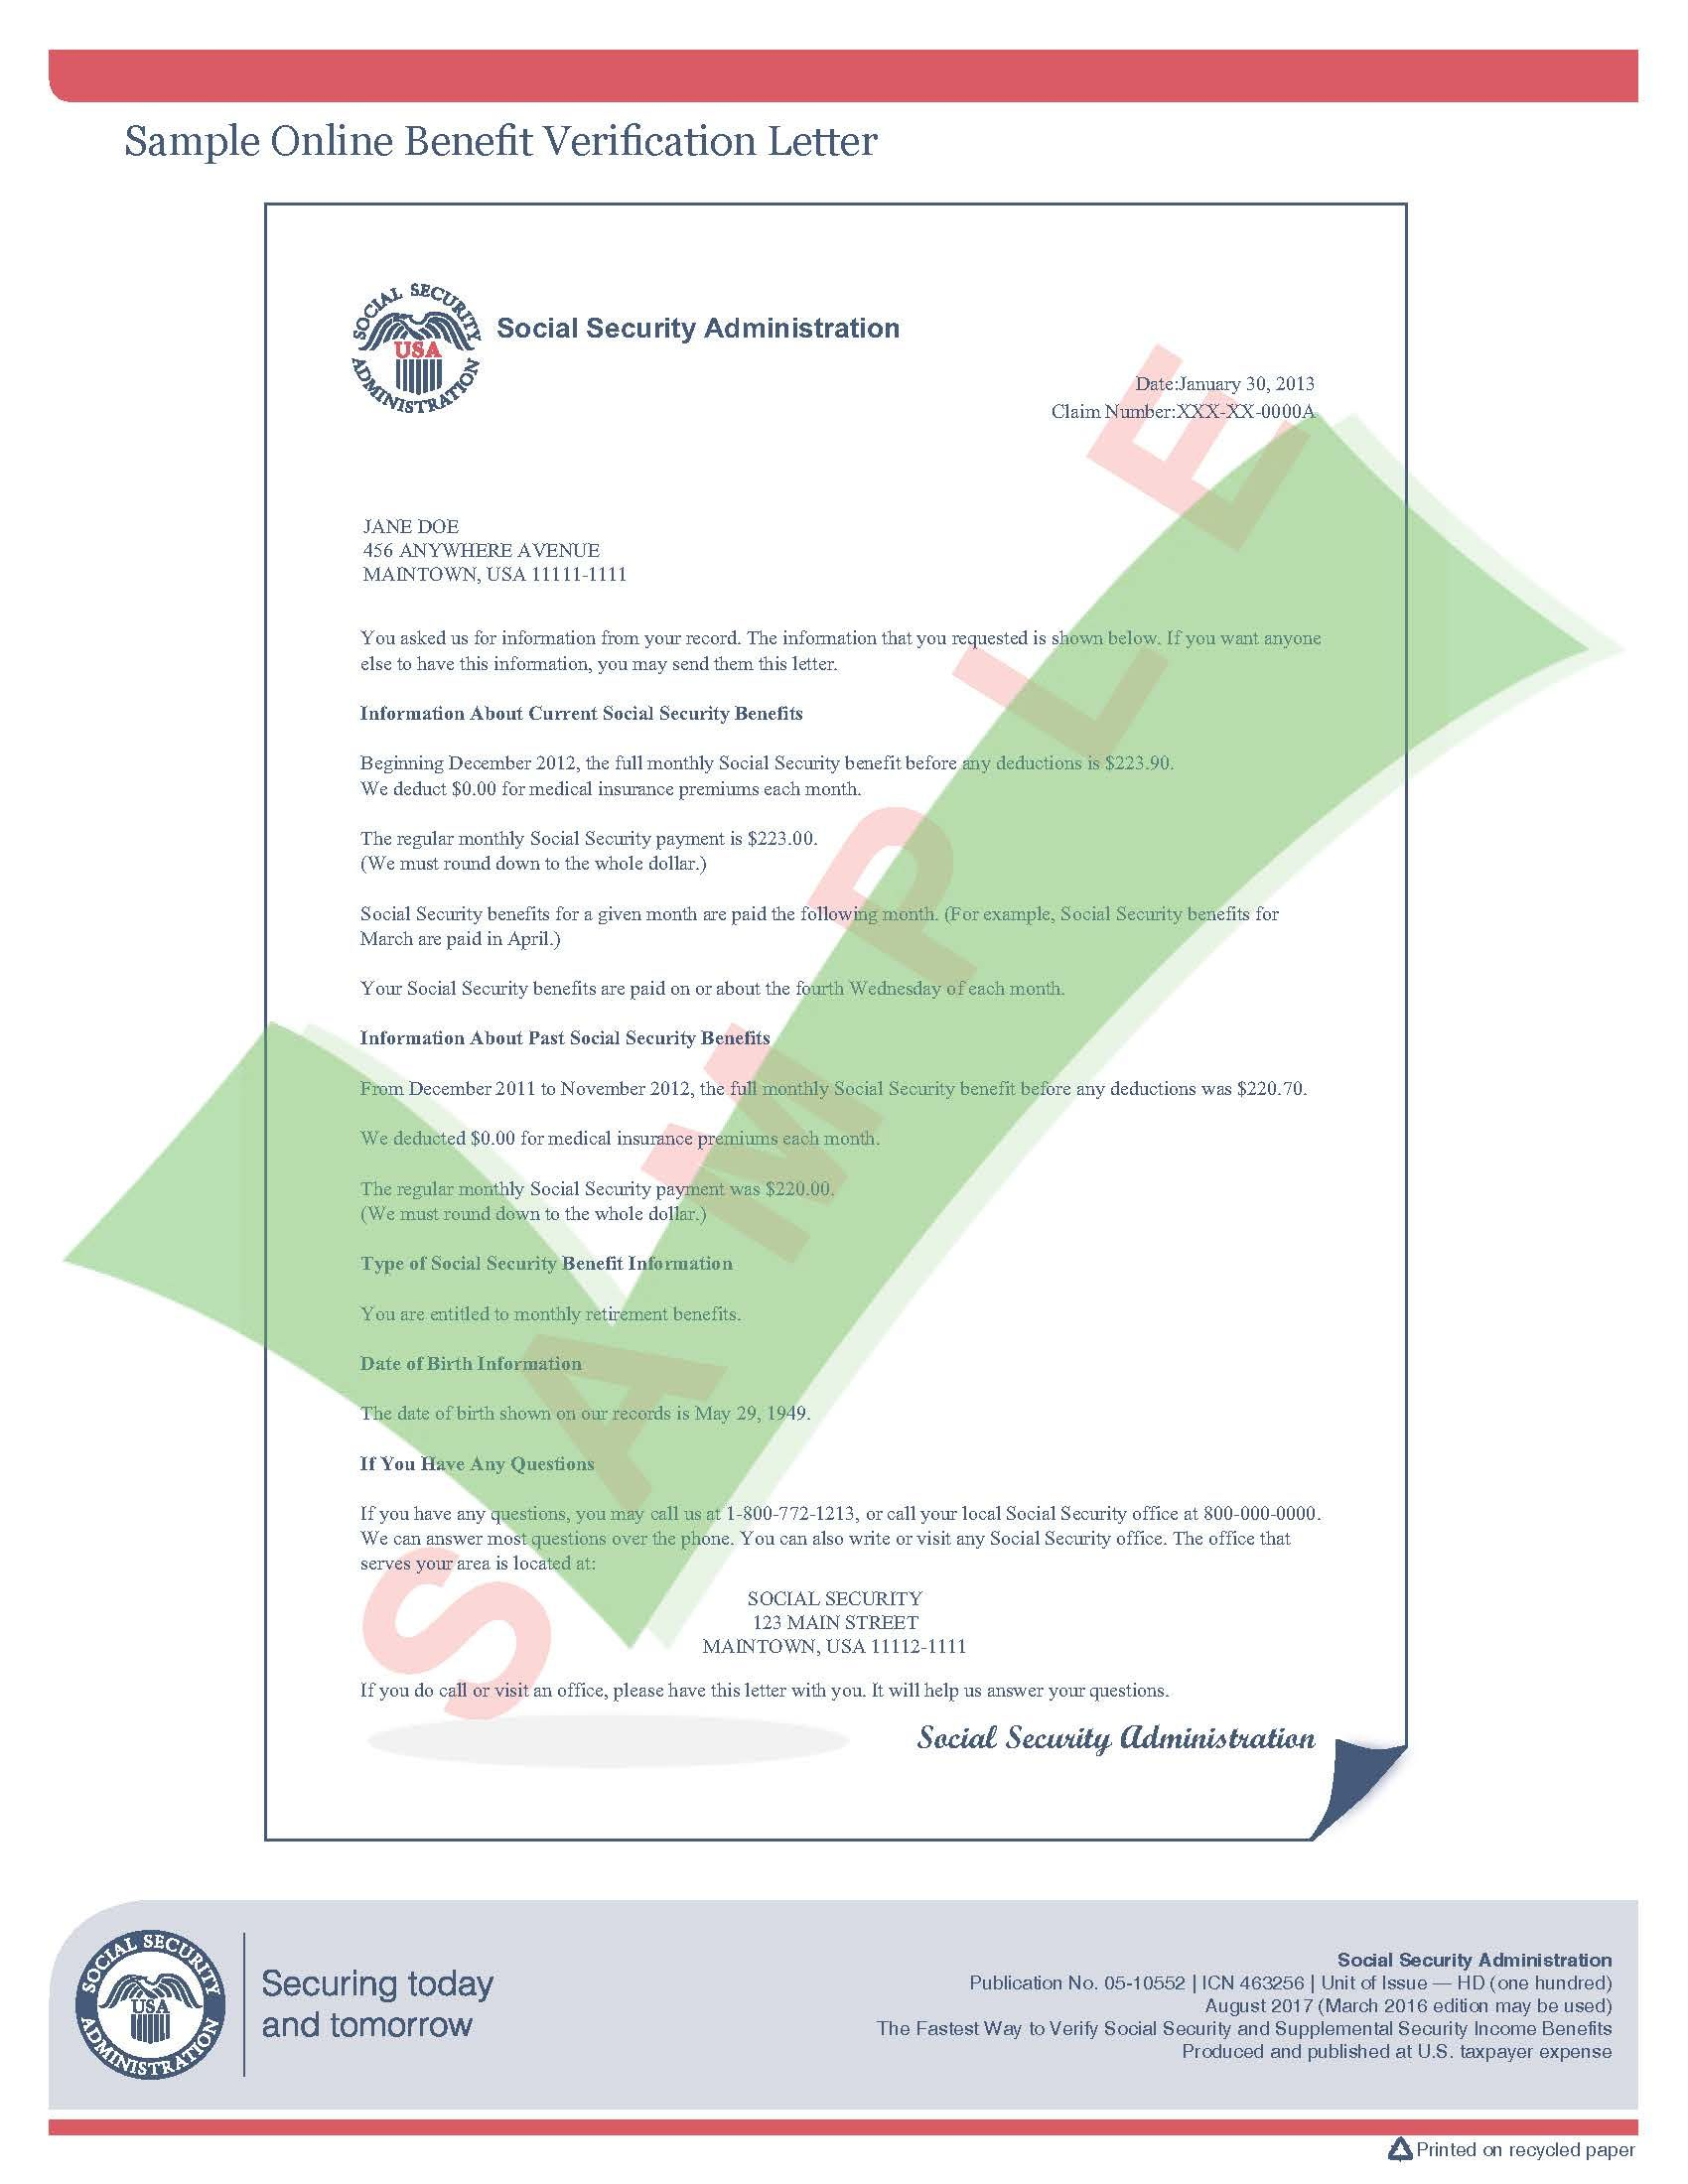 Sample Social Security Benefit Verification Letter In 2020